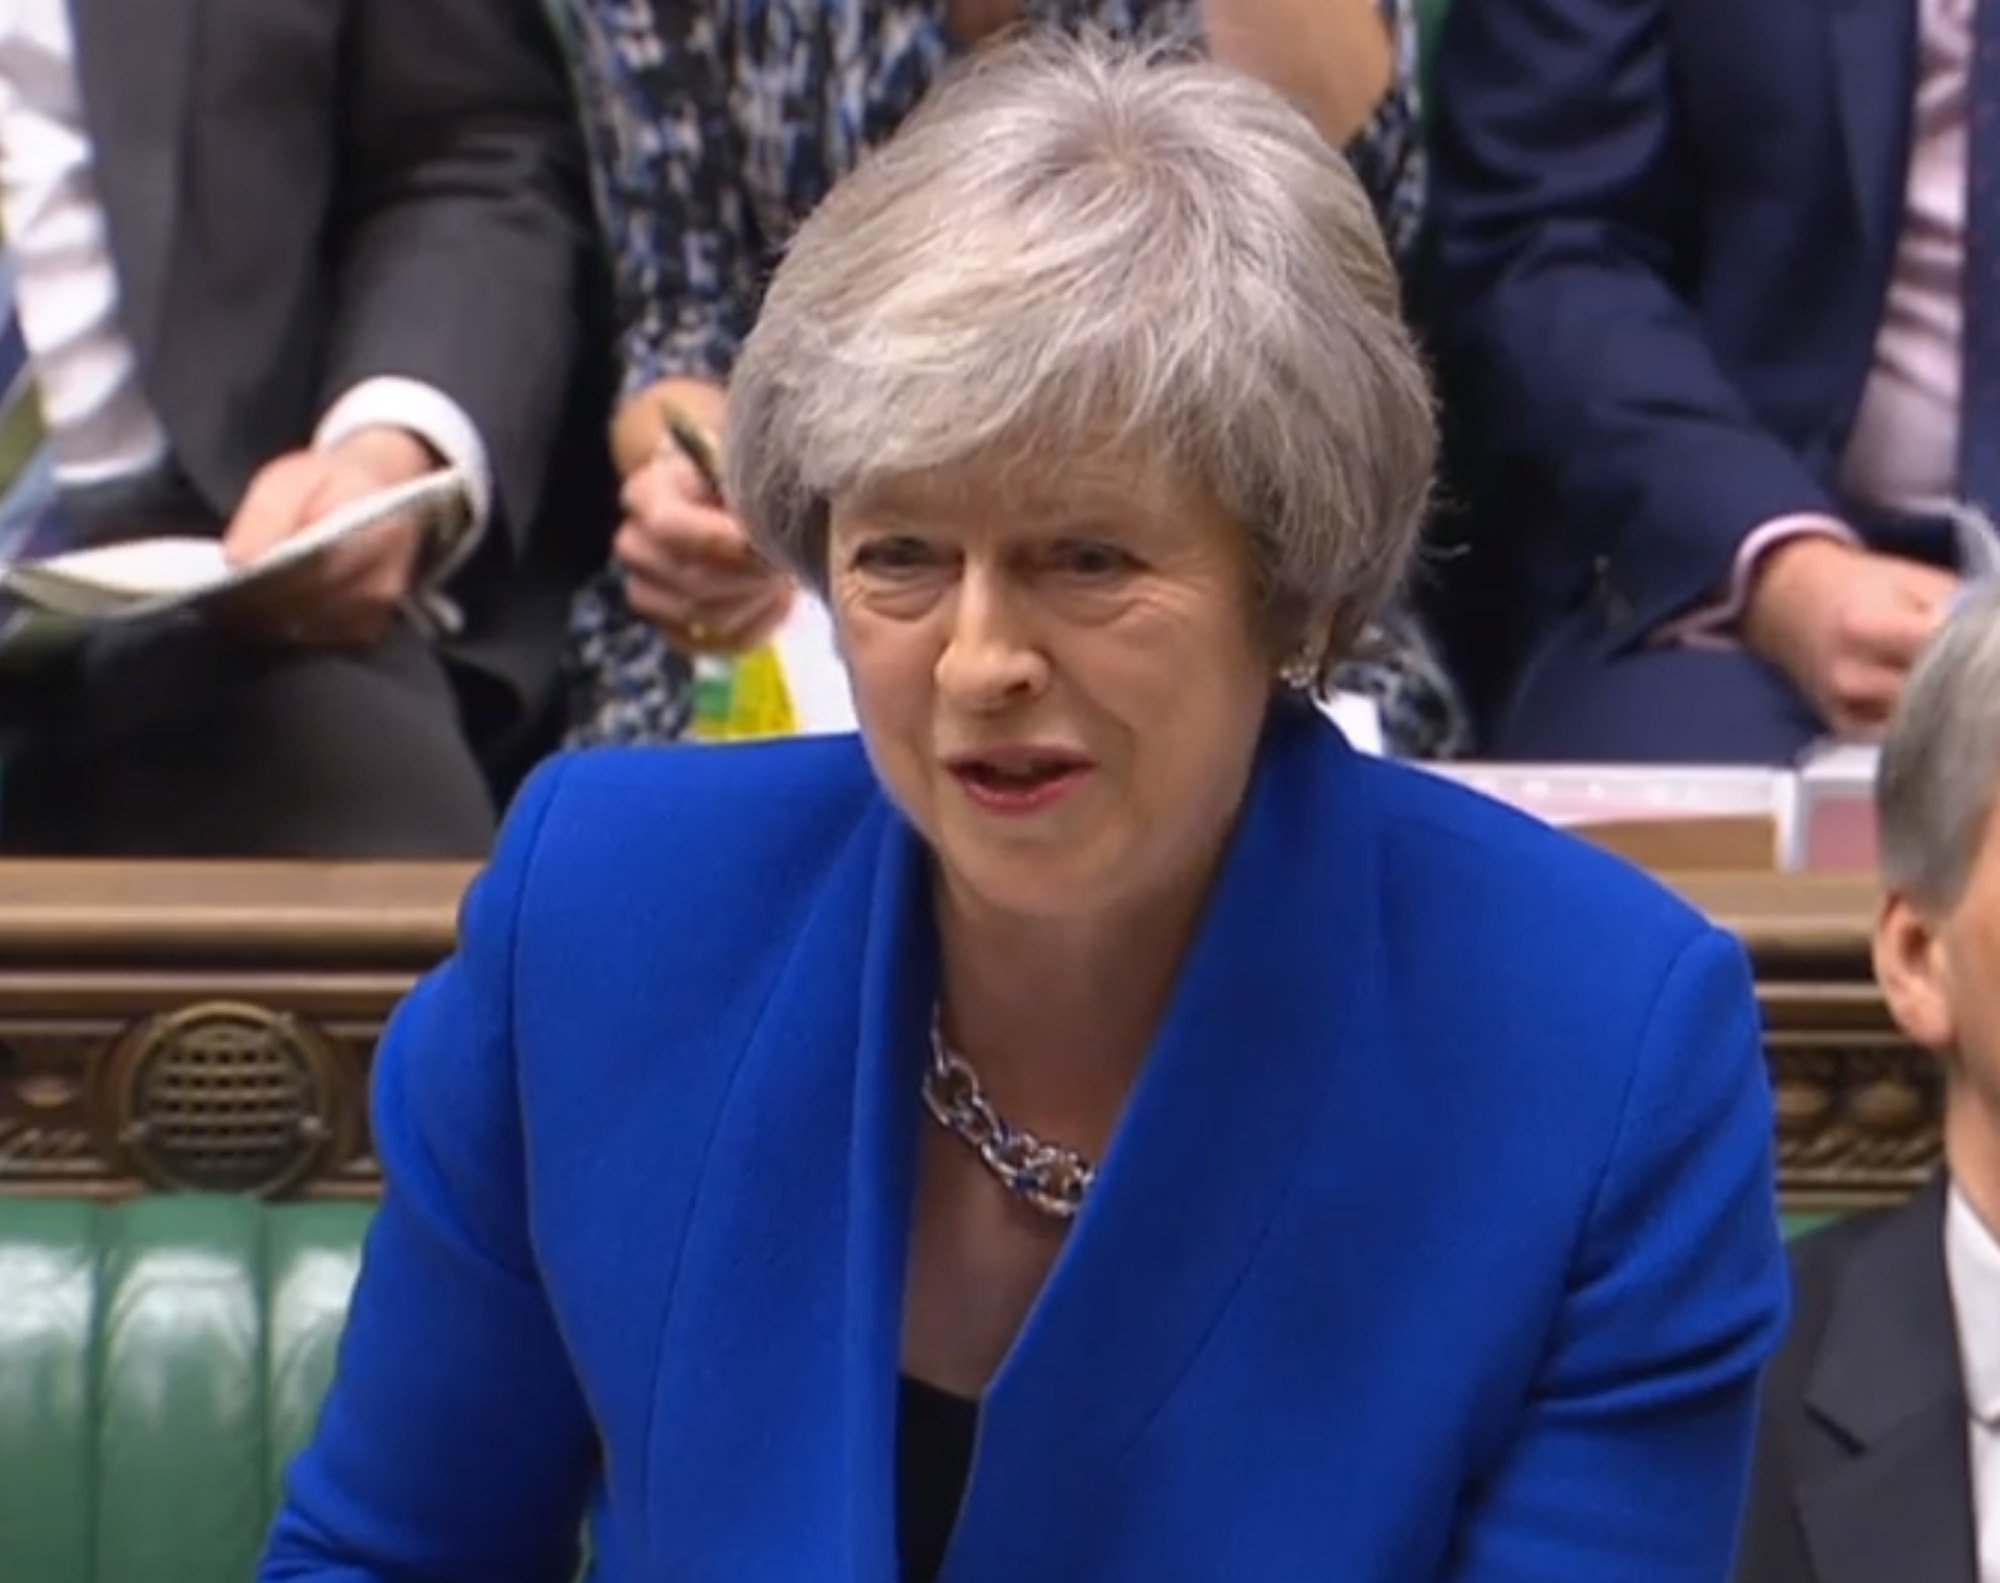 Prime Minister Theresa May speaks during Prime Minister's Questions in the House of Commons, London. PRESS ASSOCIATION Photo. Picture date: Wednesday December 19, 2018. See PA story POLITICS PMQs May. Photo credit should read: House of Commons/PA Wire